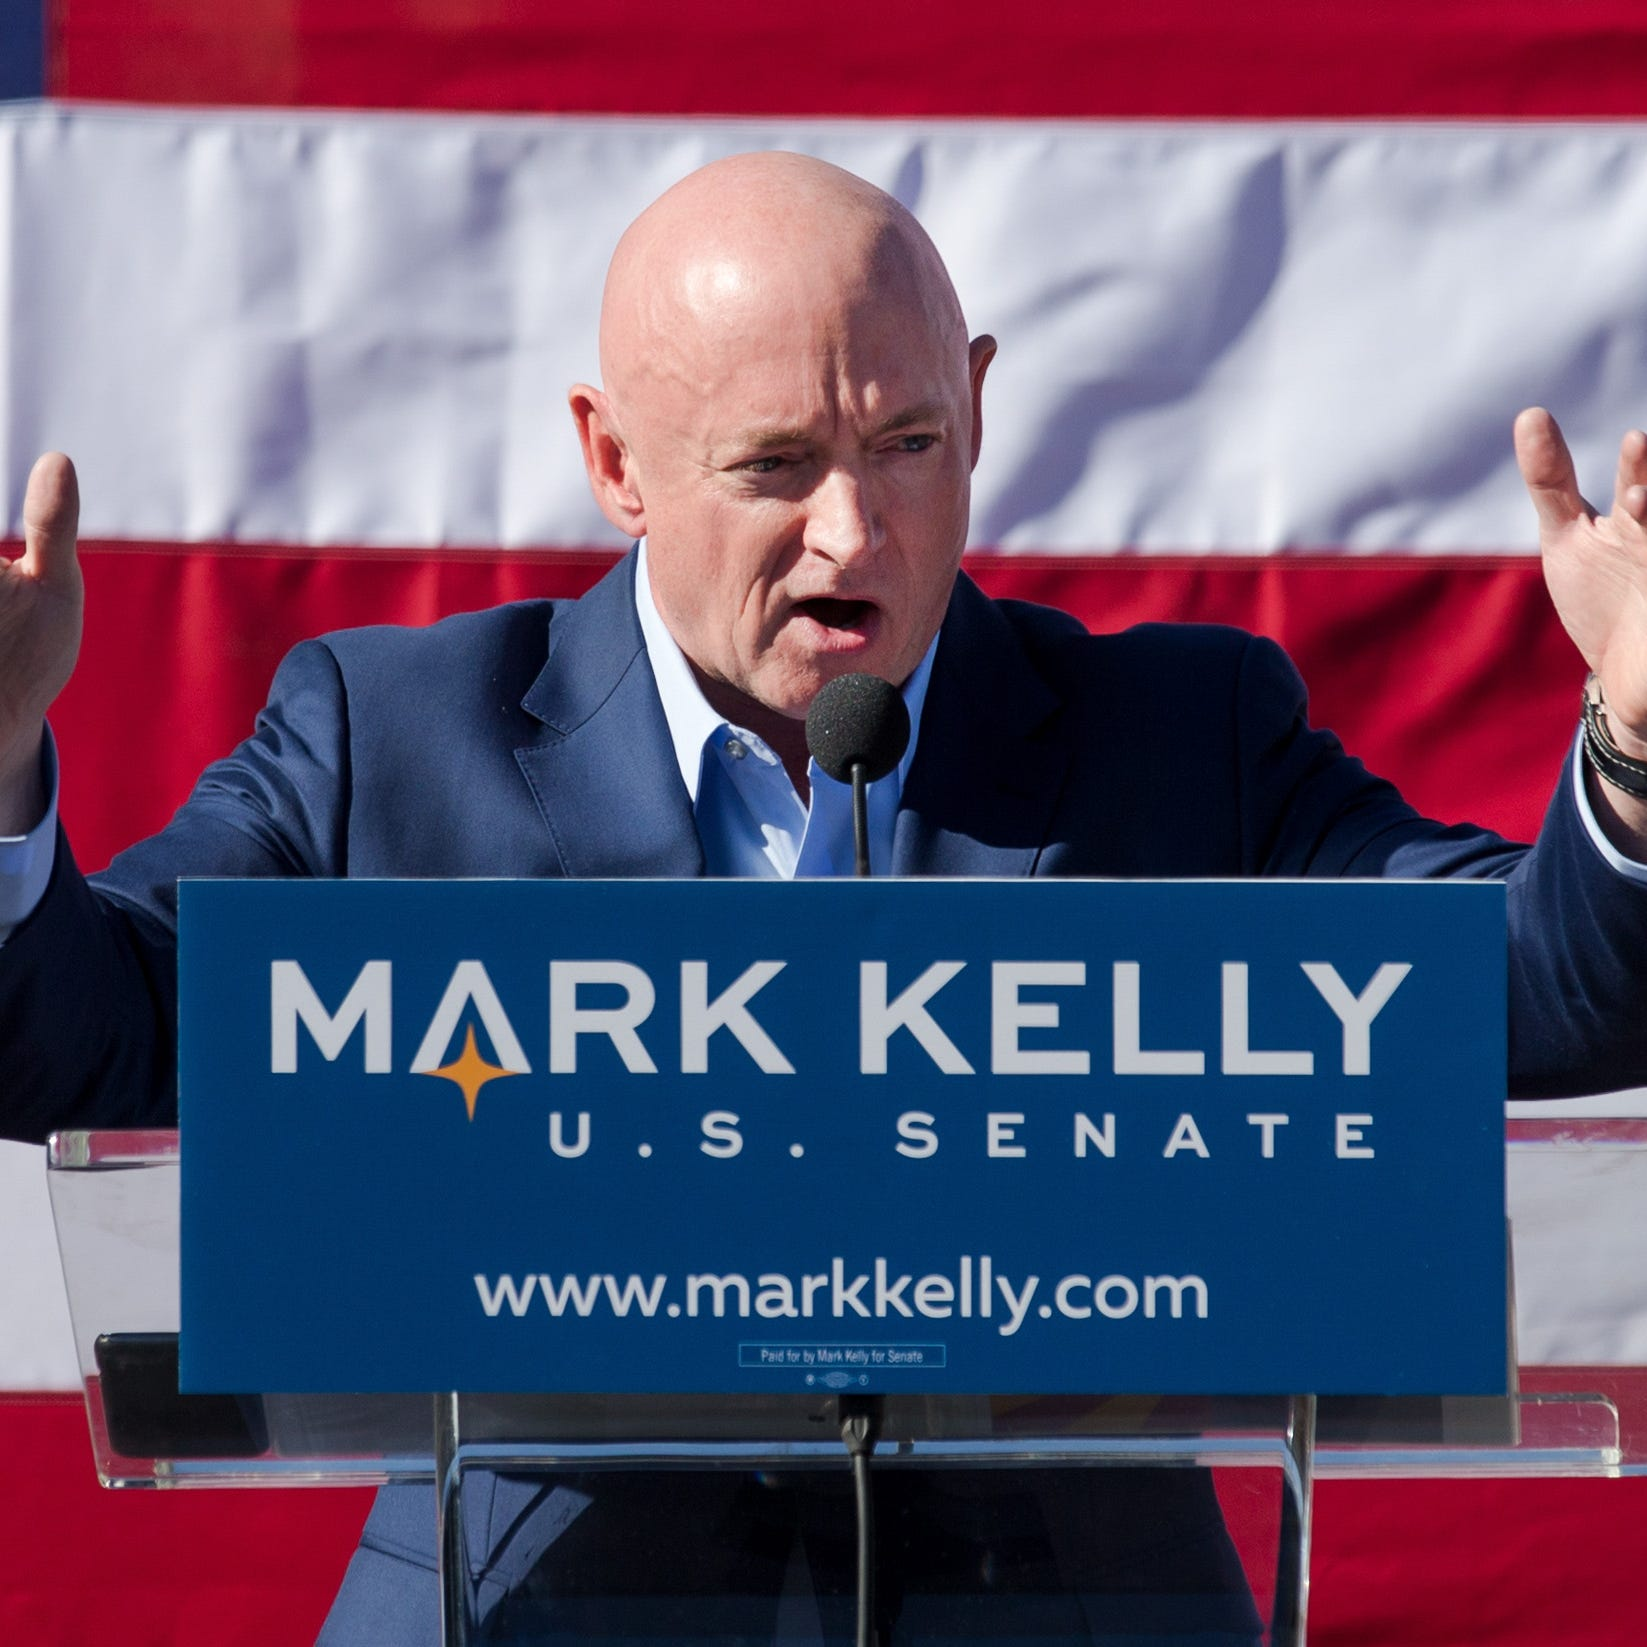 Mark Kelly criticized by GOP after onetime alleged 'deadbeat' hosts event